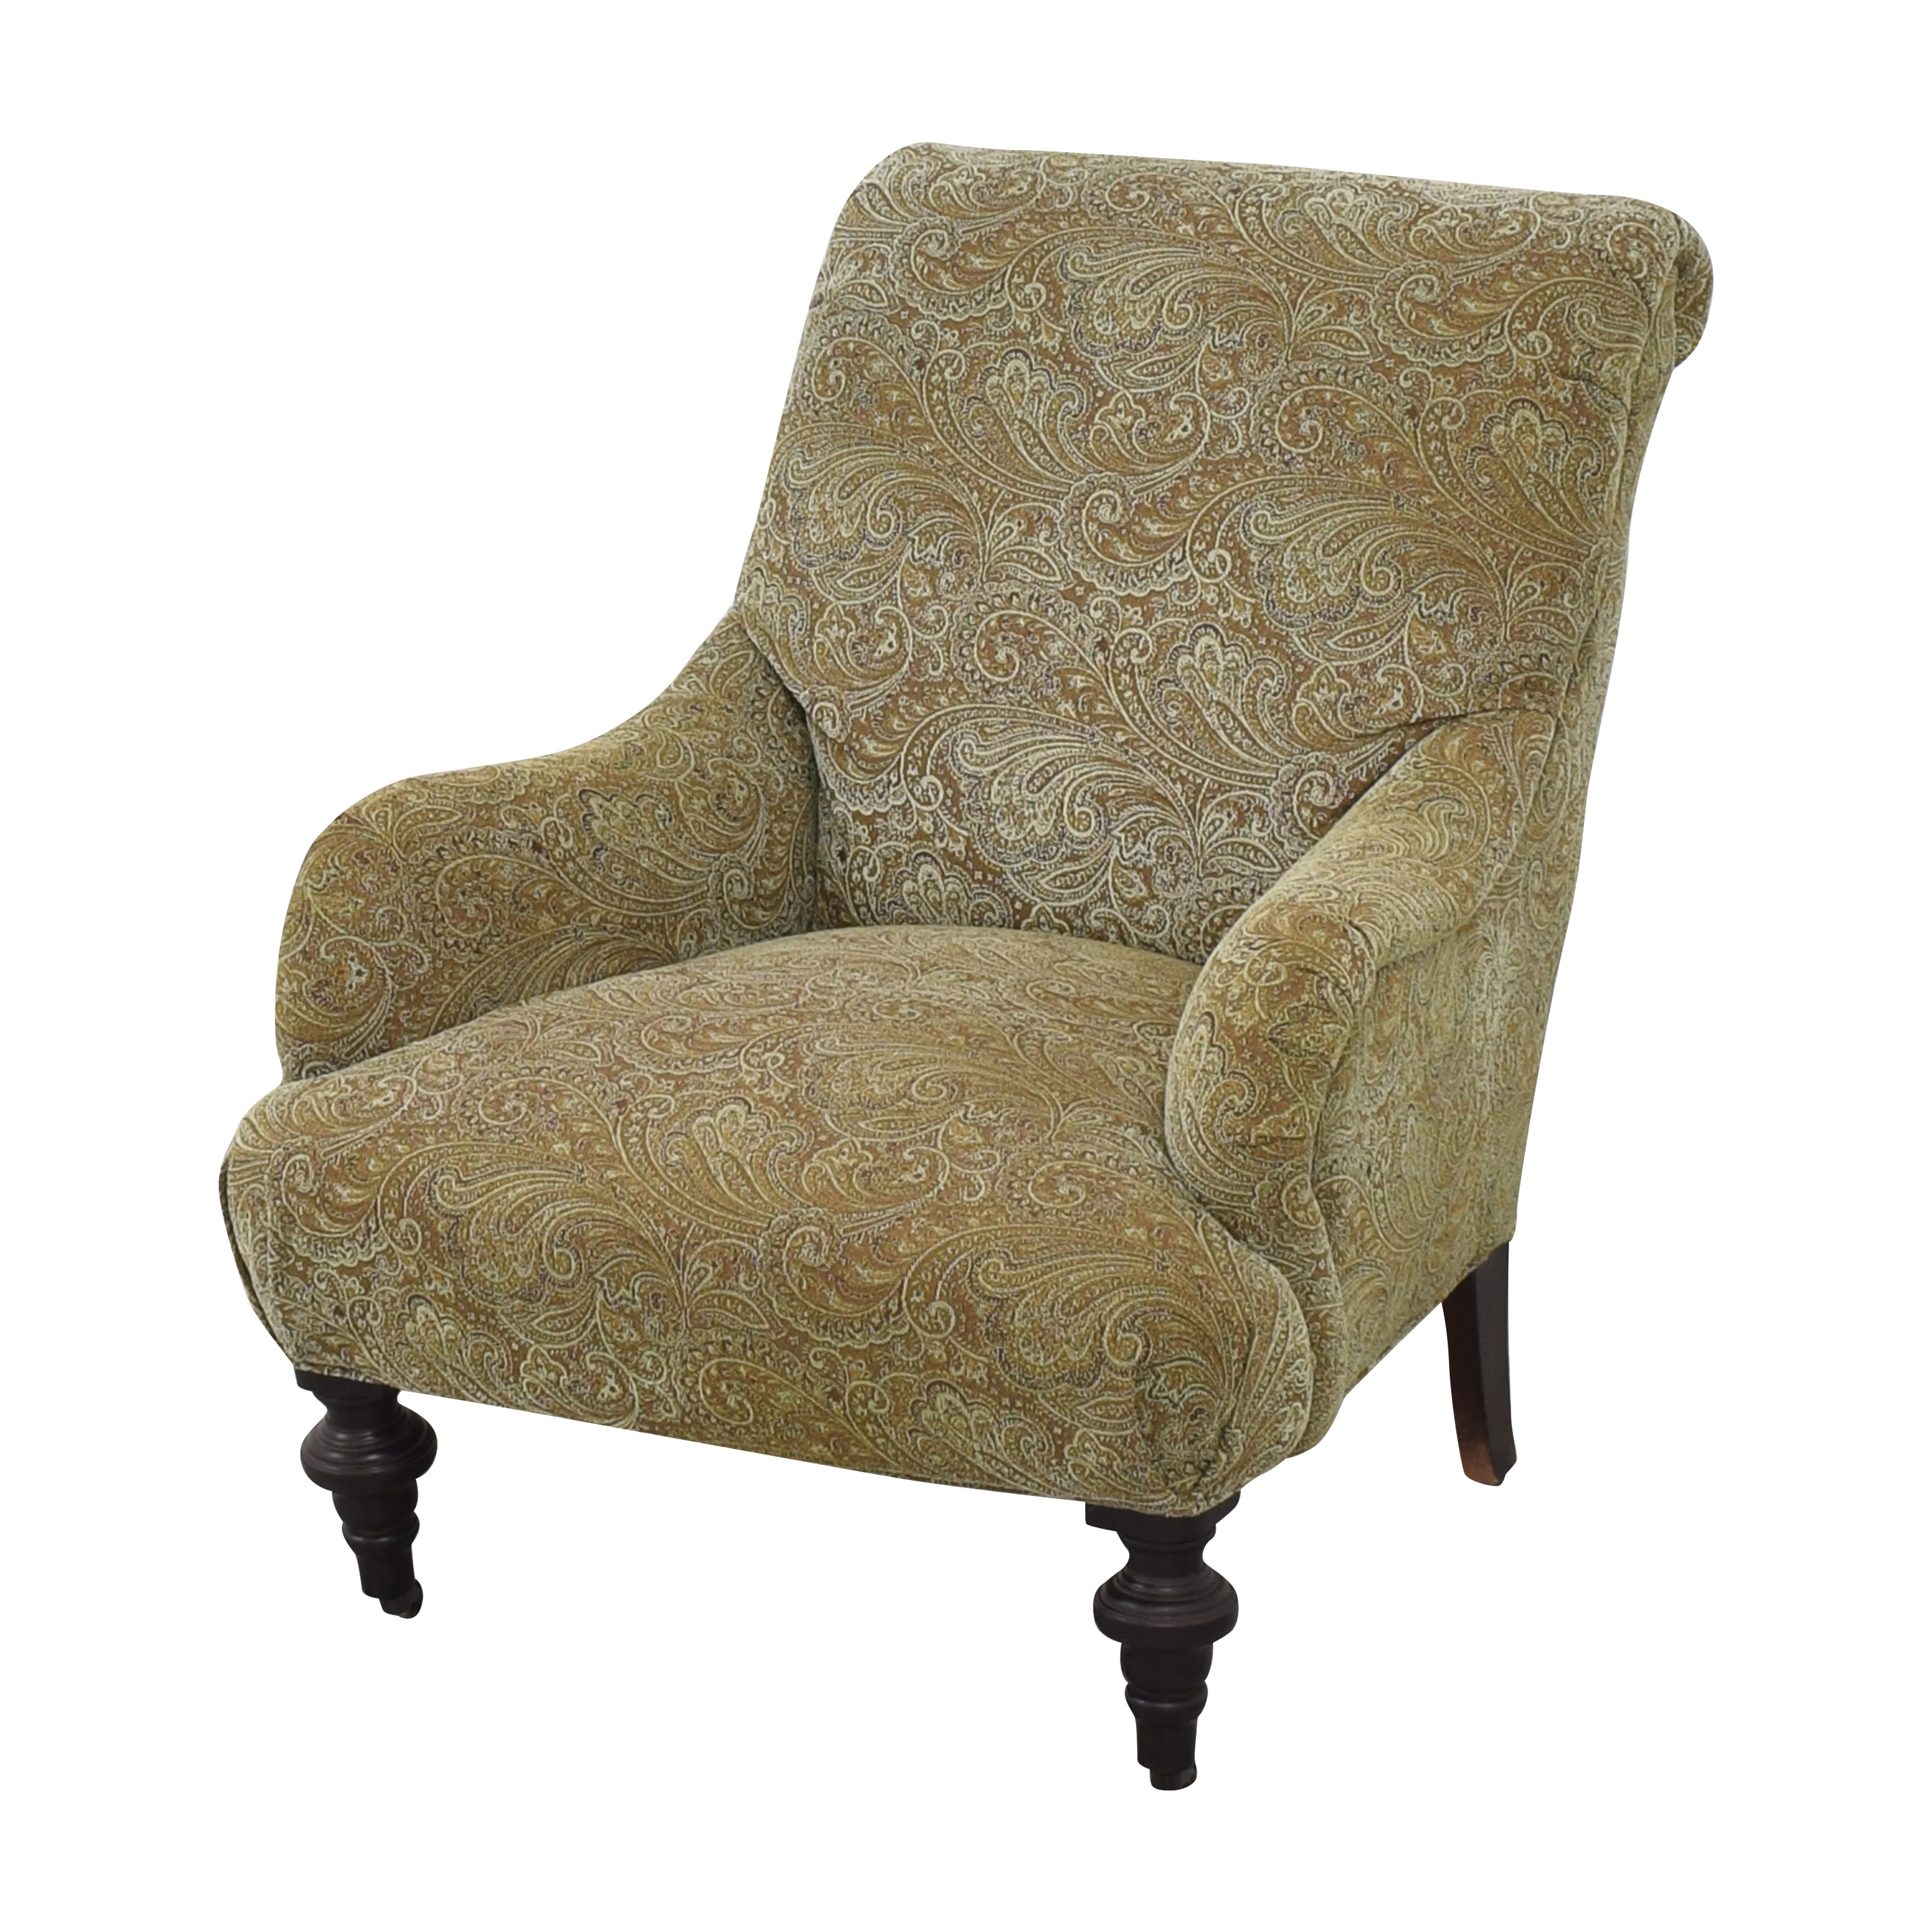 Rowe Furniture Paisley Accent Chair / Accent Chairs